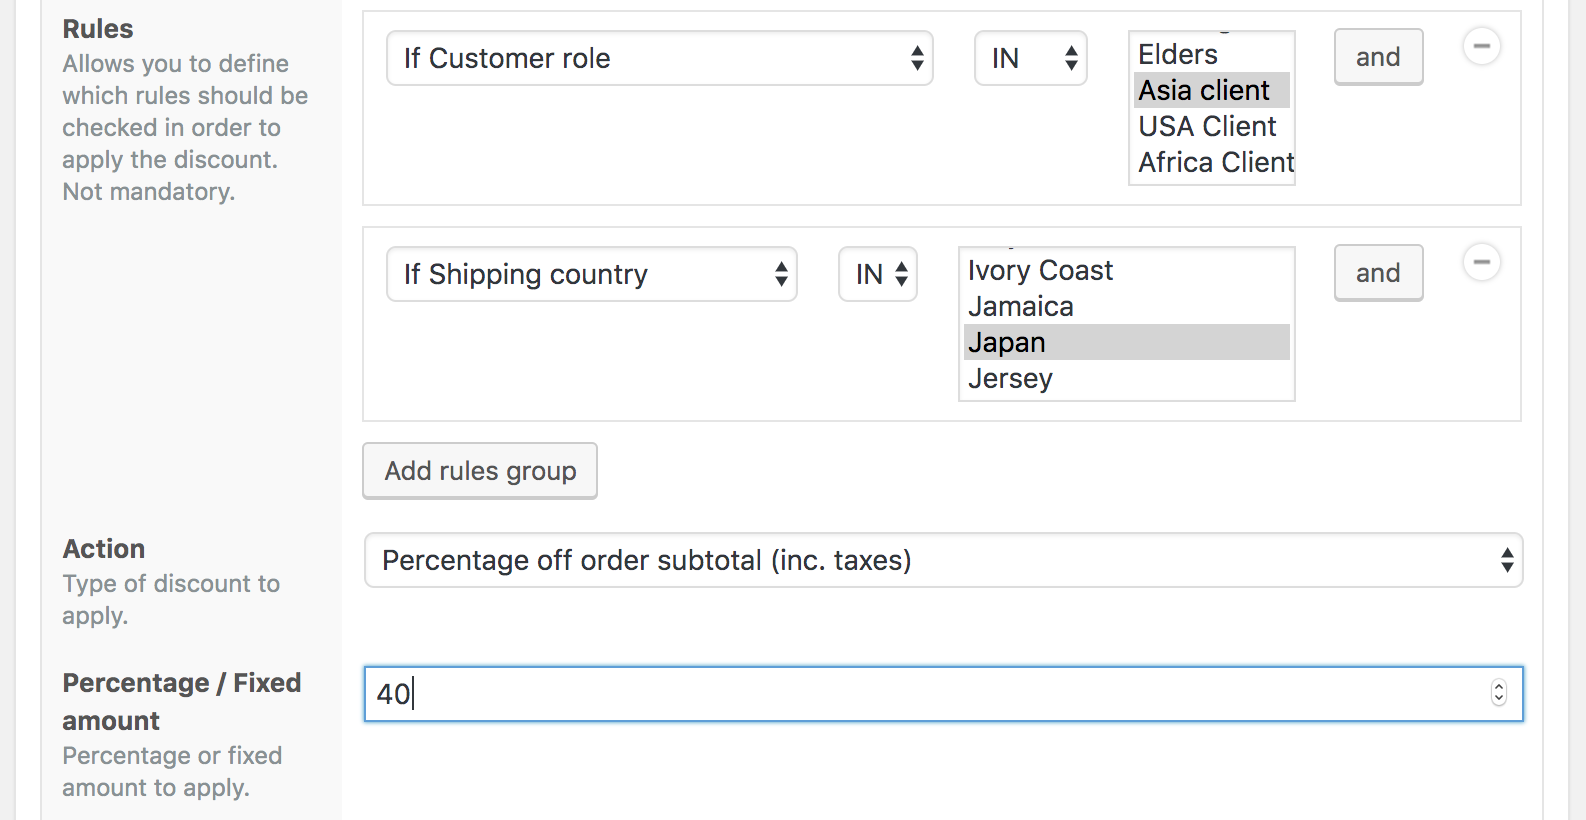 Asian client discount for Japan shipping country